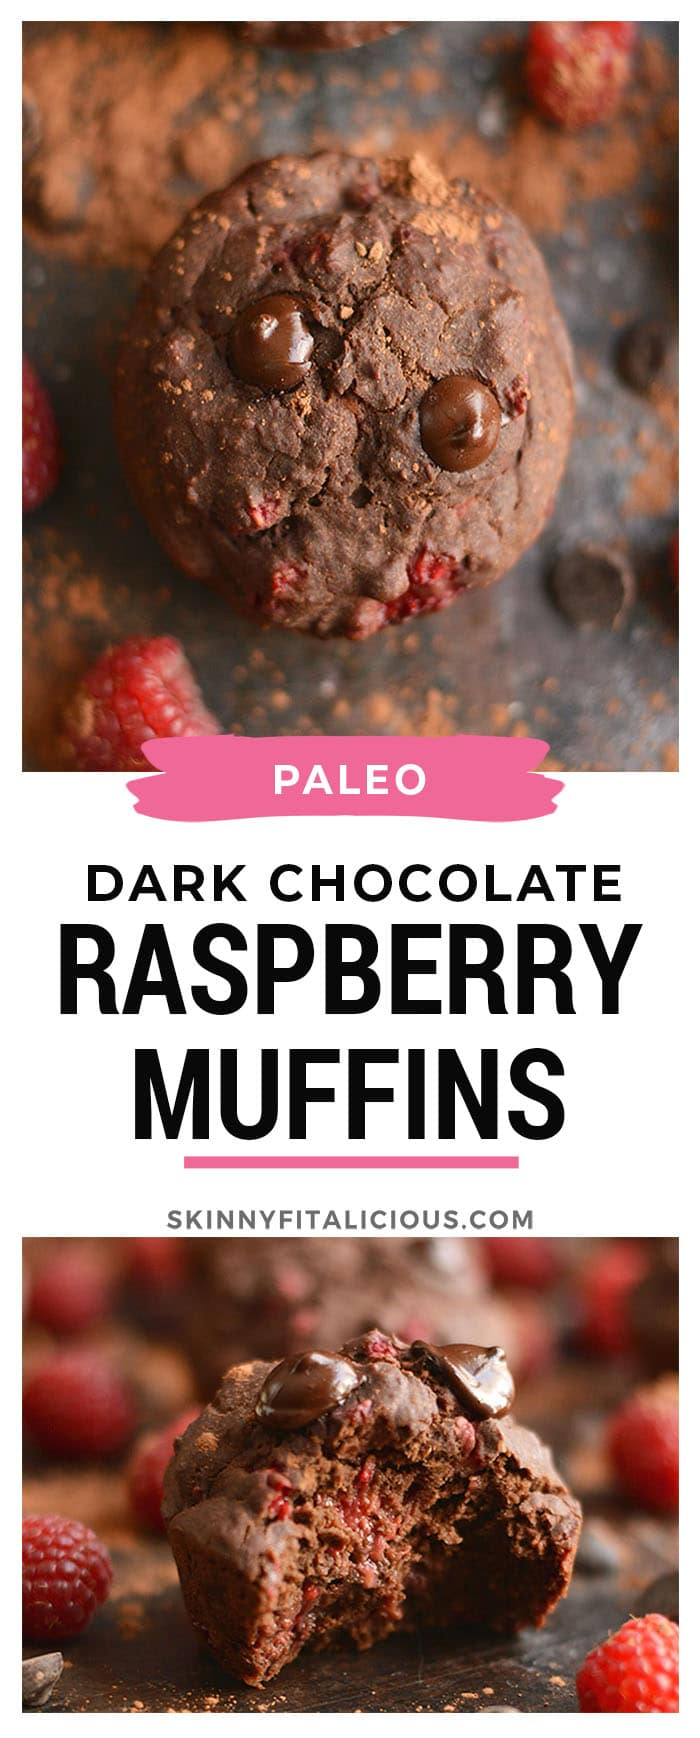 Dark Chocolate Raspberry Muffins bursting with a creamy berry center surrounded by irresistible dark chocolate! A healthier cupcake-like treat that's weight loss friendly. Gluten Free + Low Calorie + Paleo